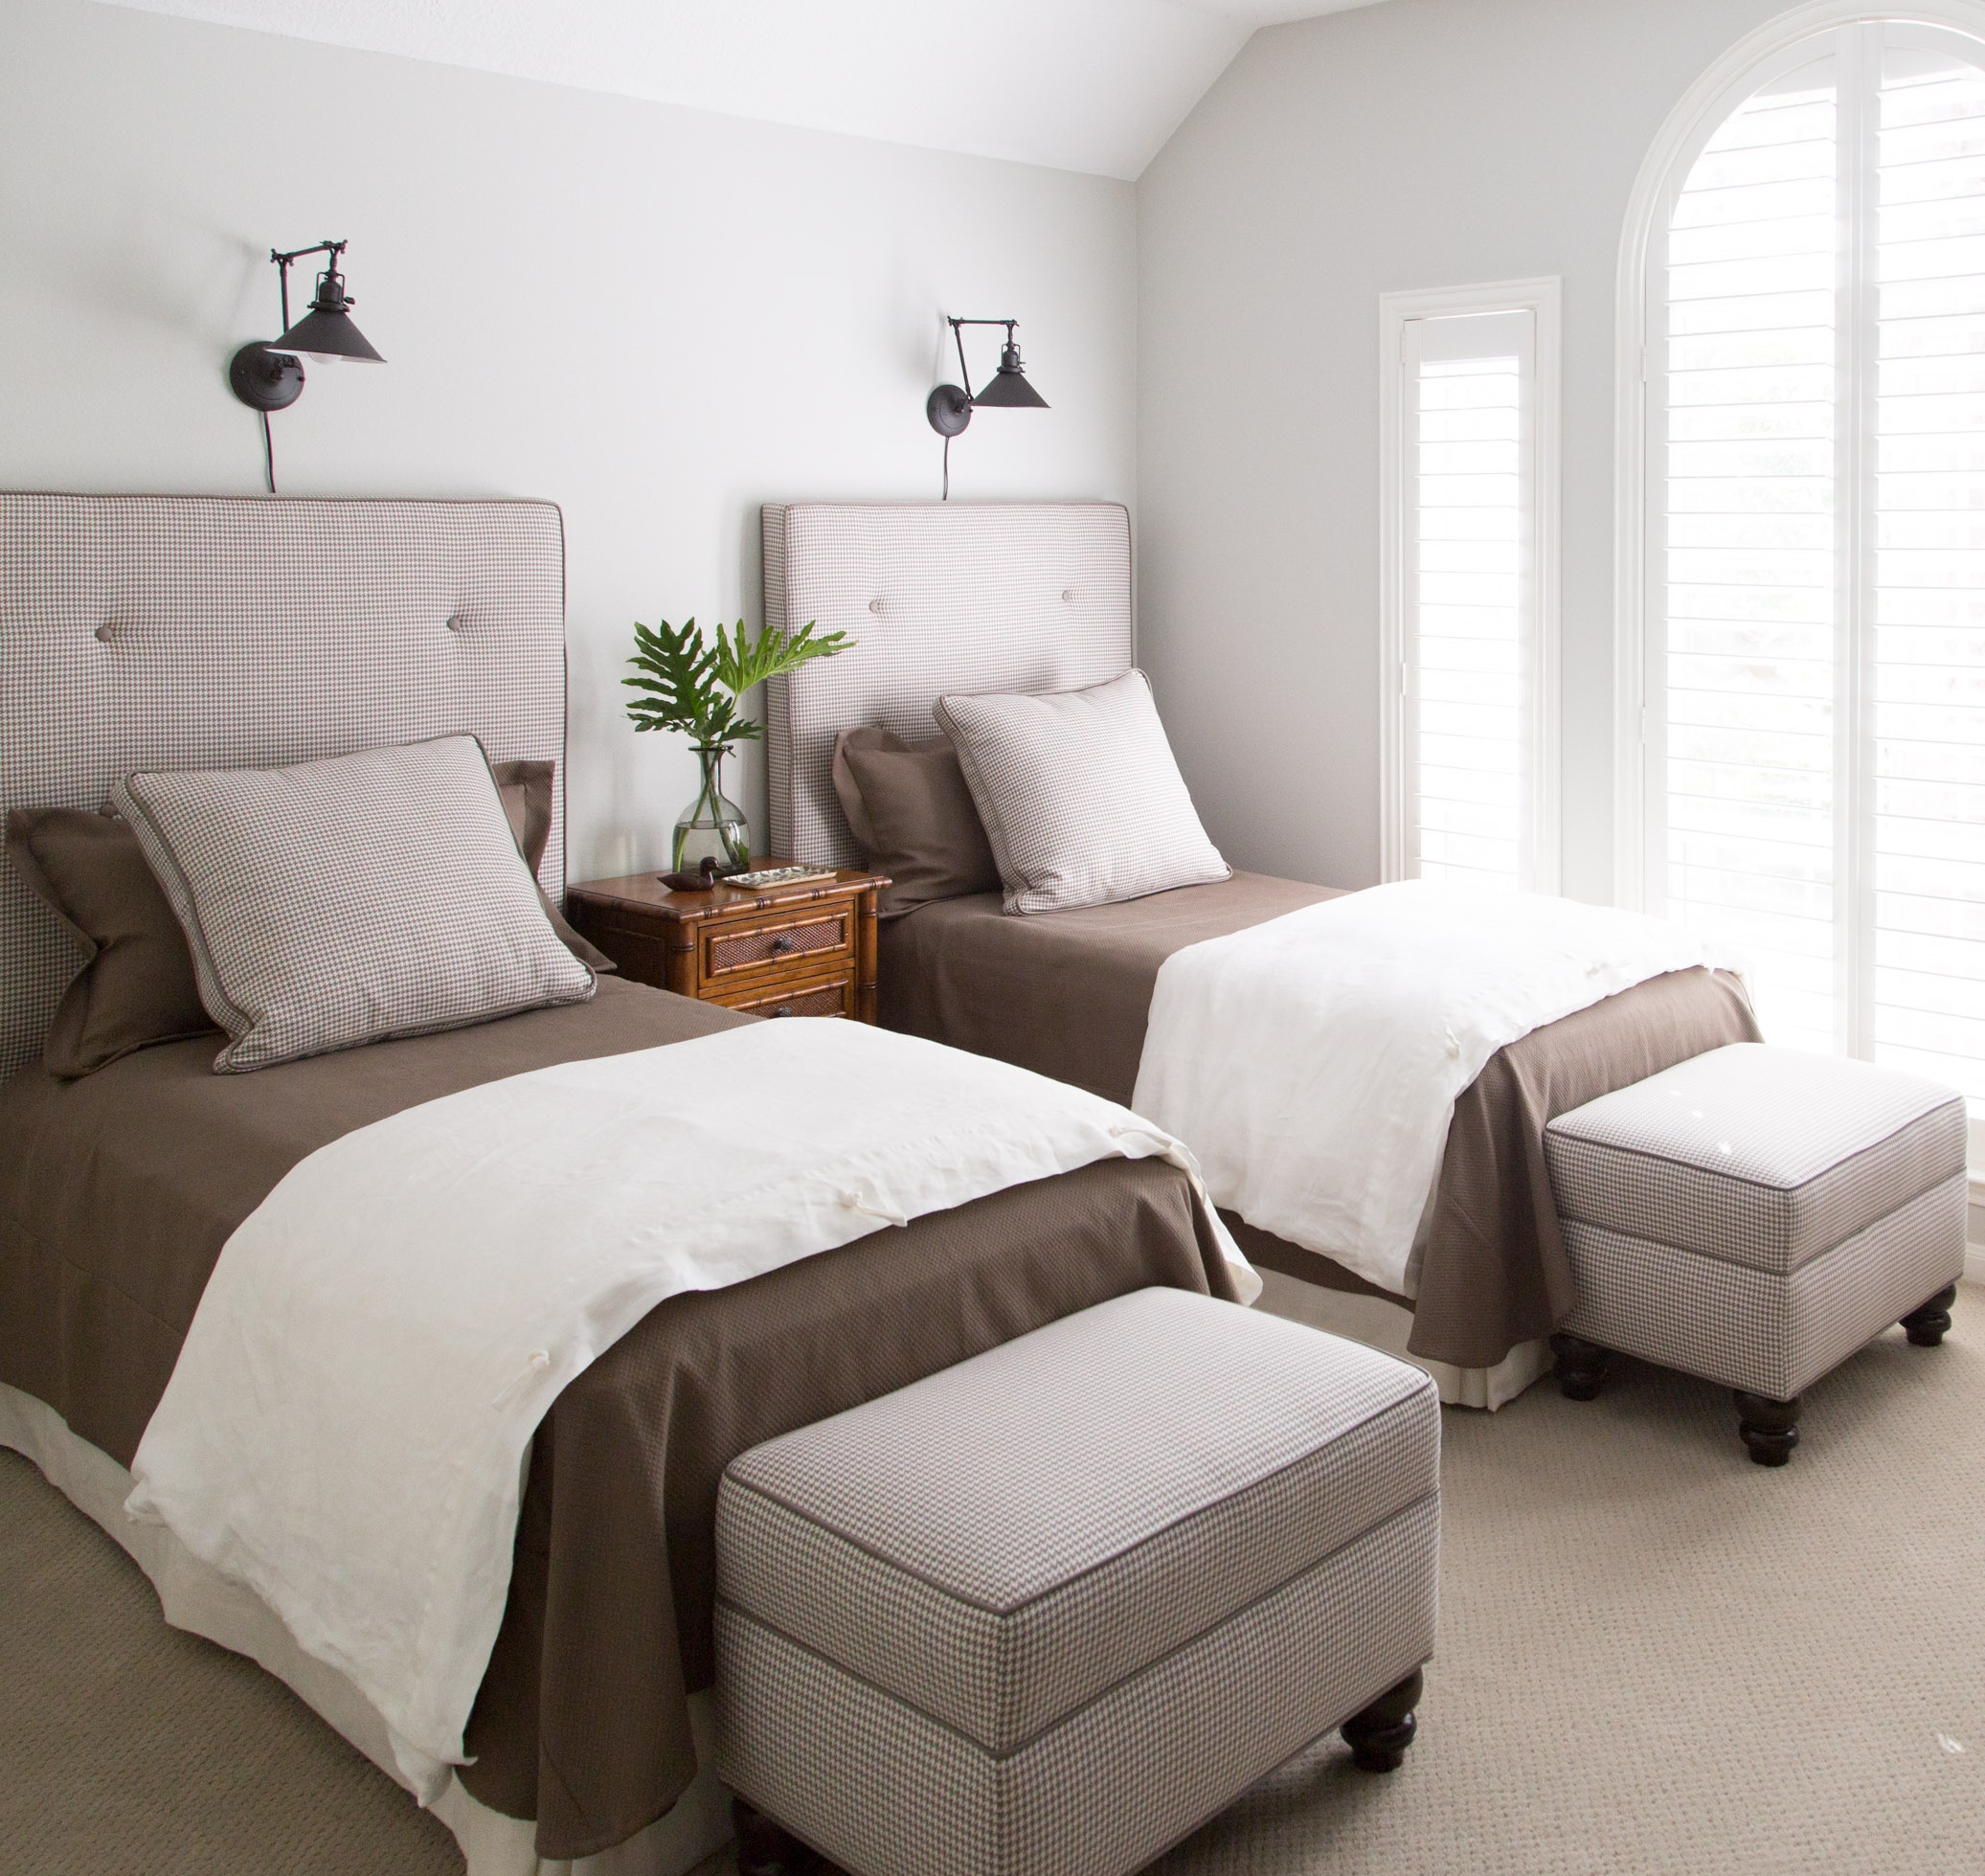 How much does it cost to hire an interior designer - Hire interior designer student ...